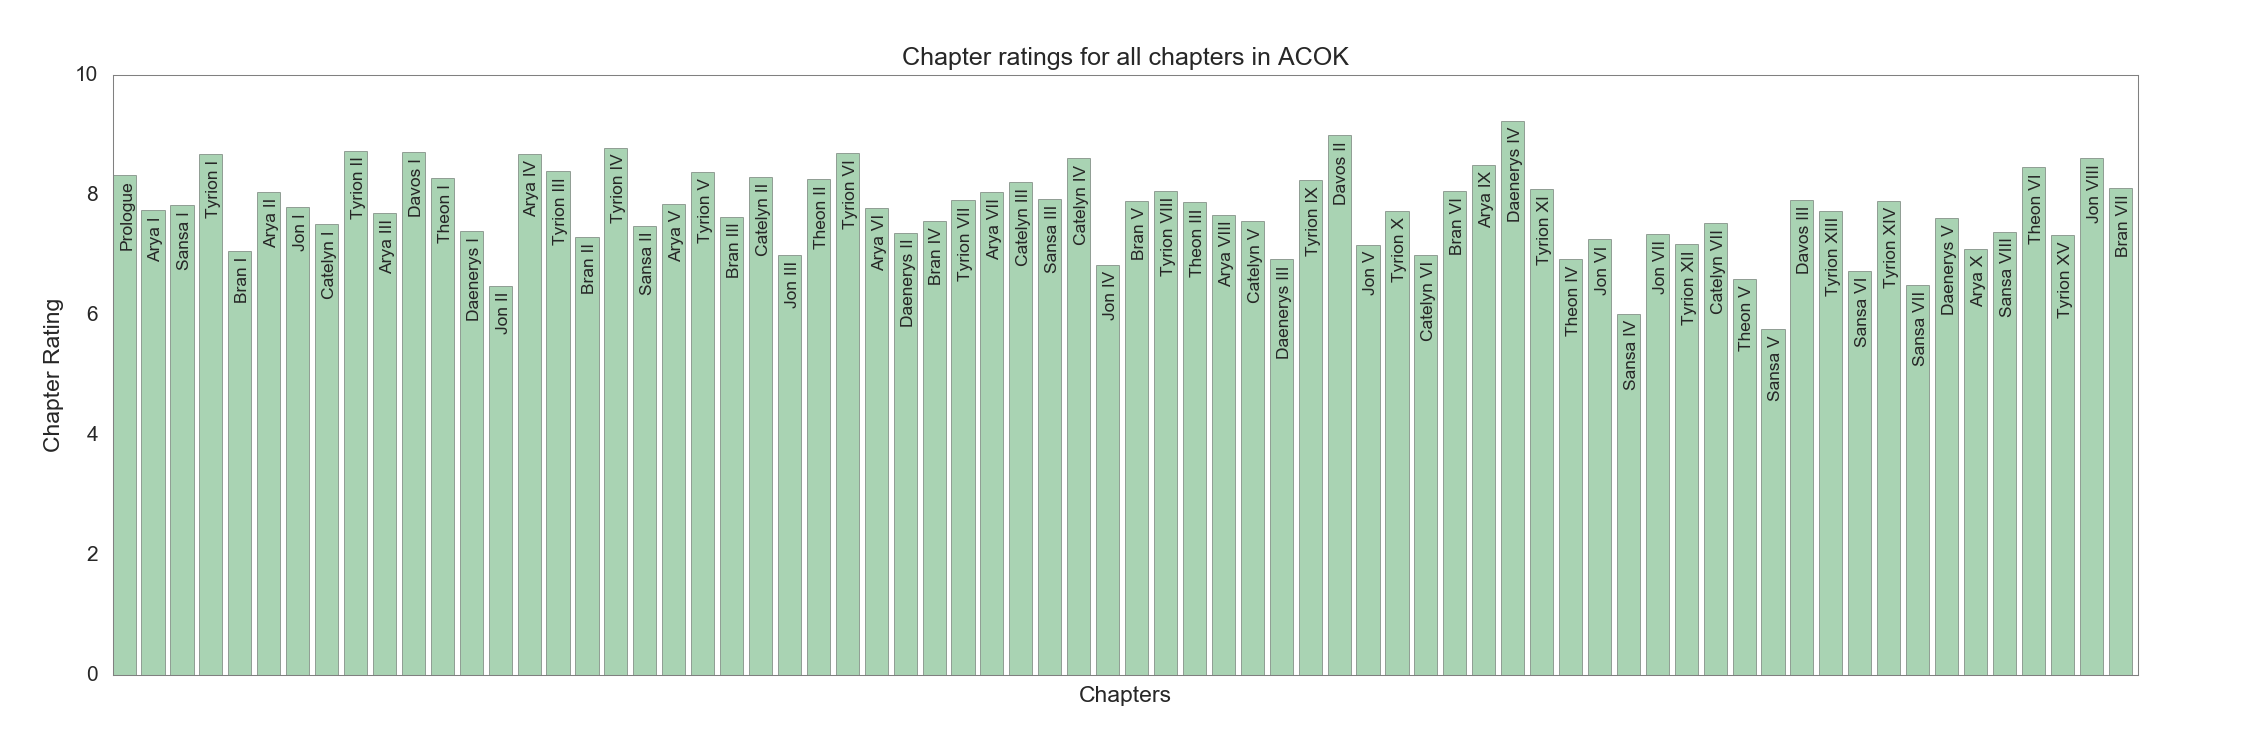 Chapter ratings in ACOK